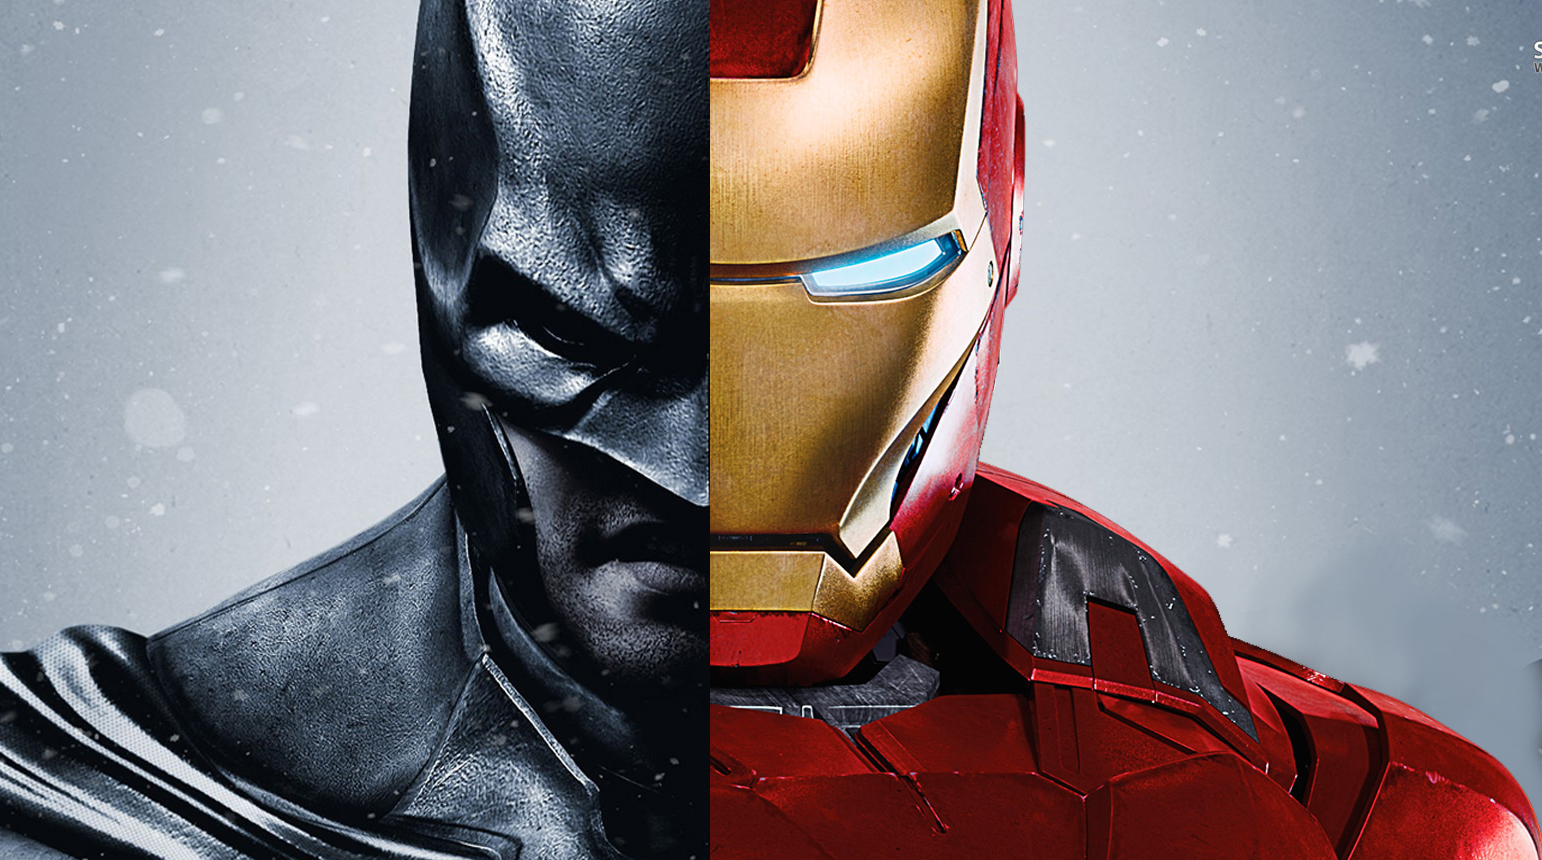 10 STUNNING Images of Iron Man and Batman Where Fans Took ...